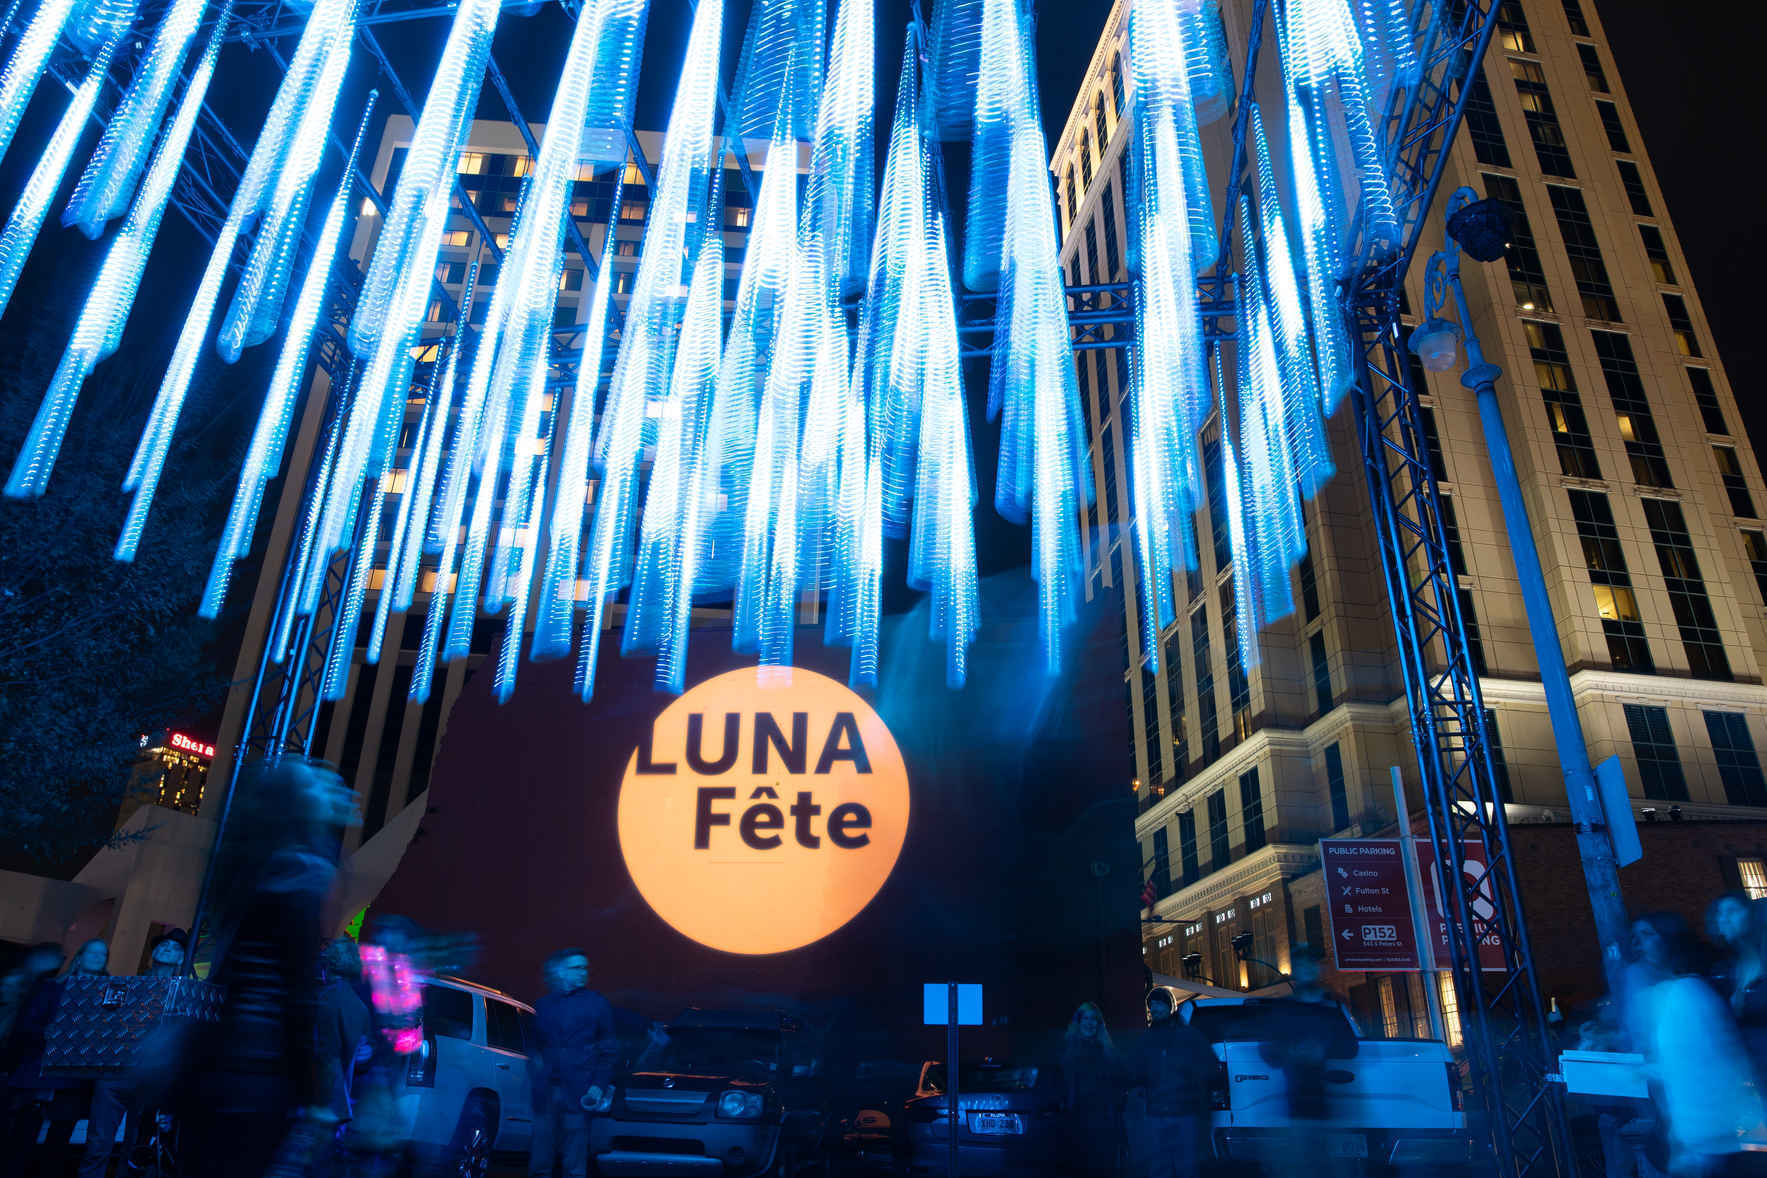 LUNA Fete 2019: VIP Experiences & Introductory Sponsorship Opportunities image